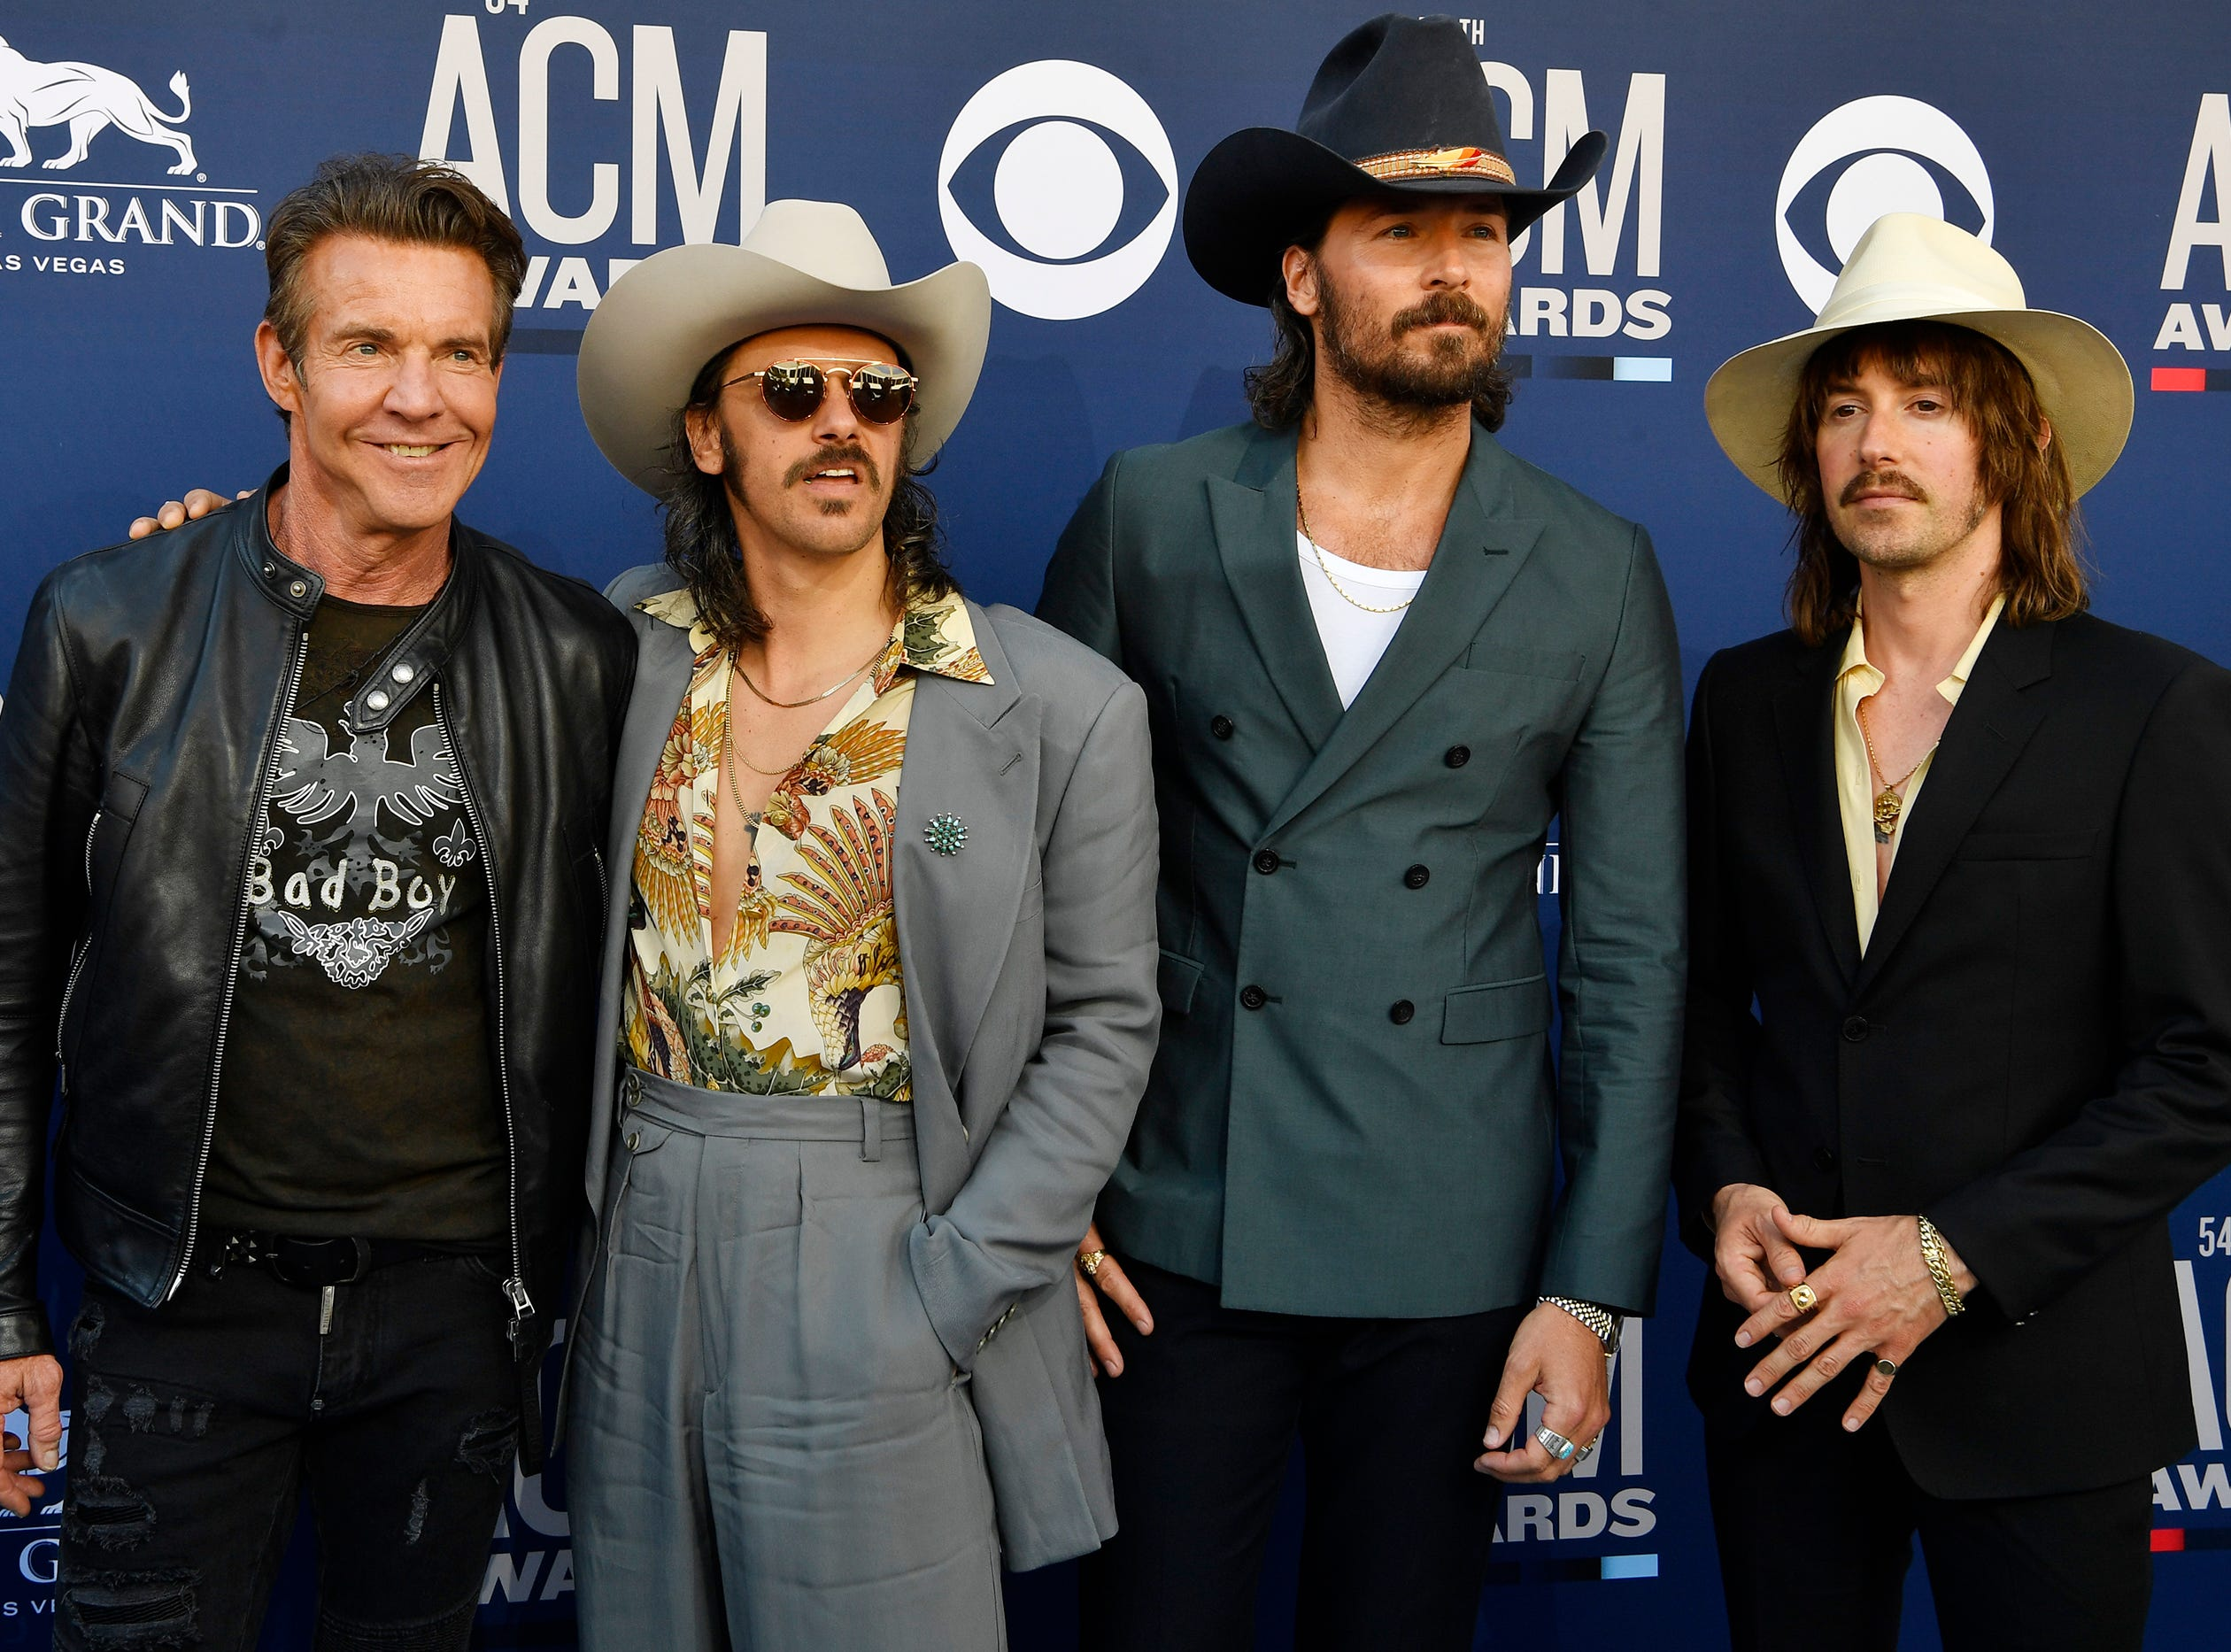 Midland walks the red carpet at the 54TH Academy of Country Music Awards Sunday, April 7, 2019, in Las Vegas, Nev.